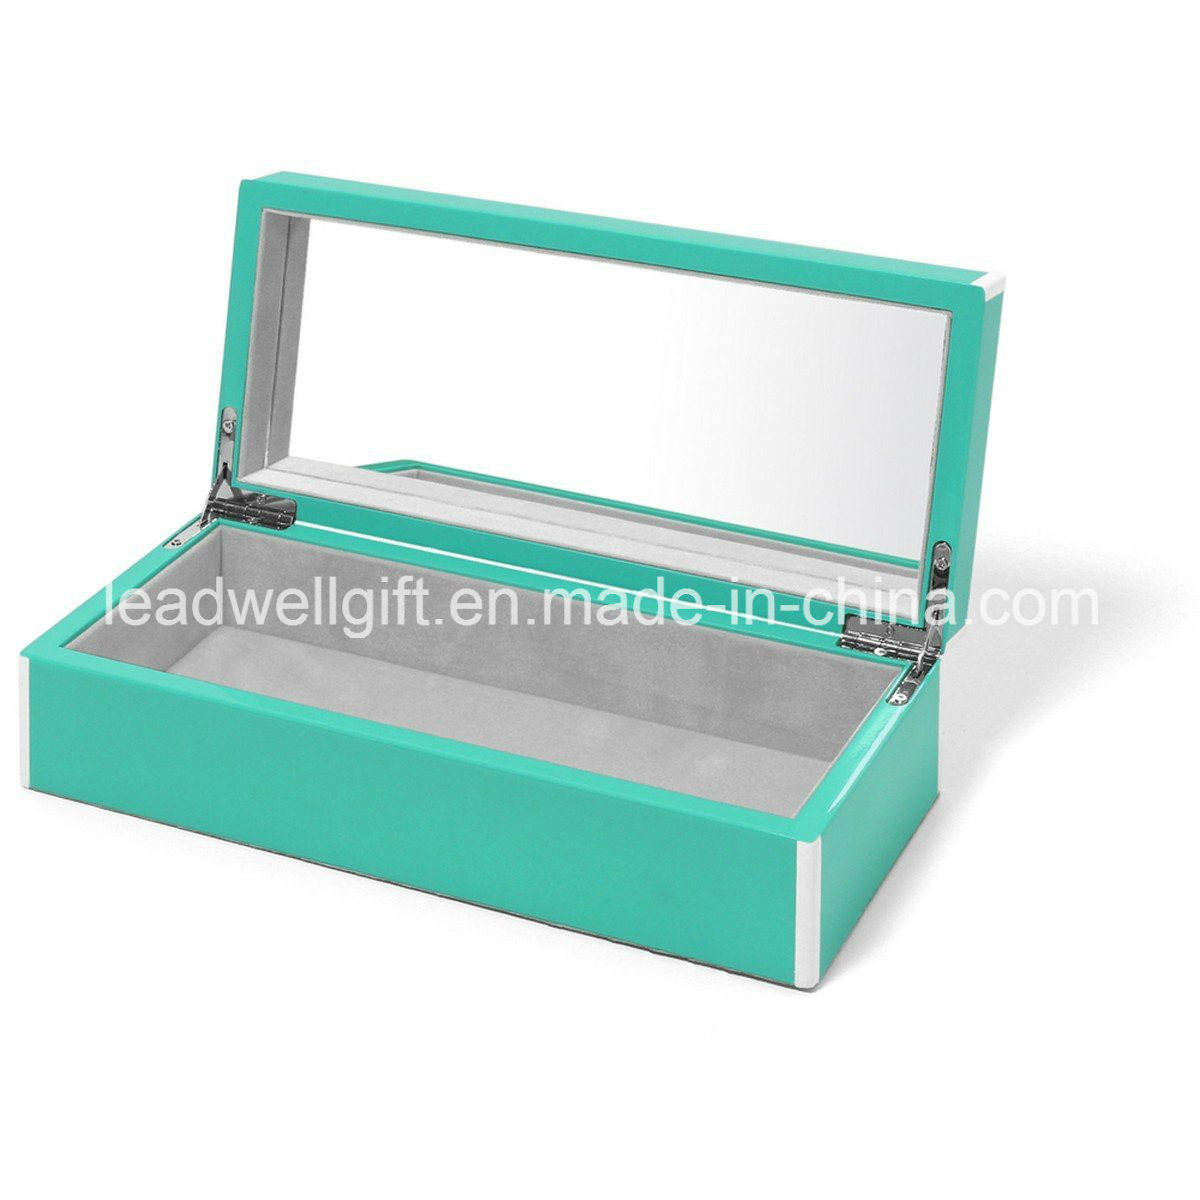 Lacquer Vanity Box with High Gloss Case